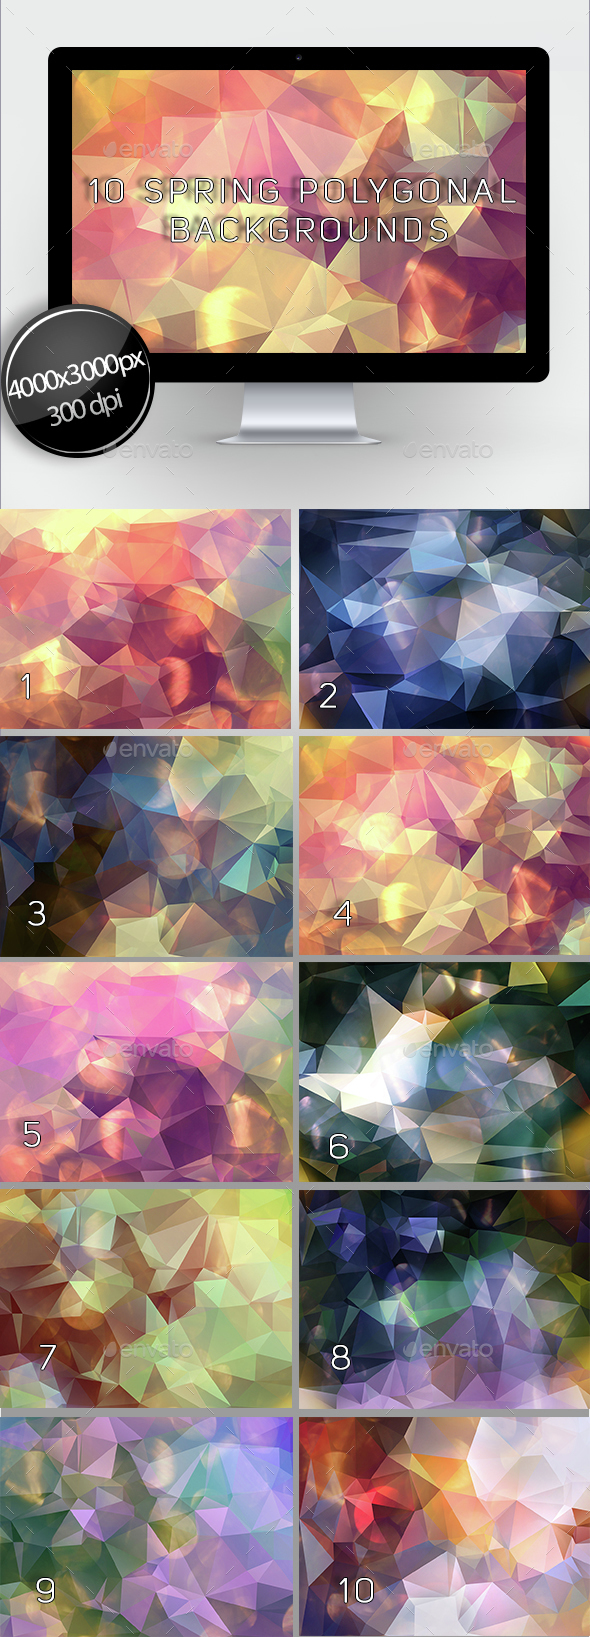 10 Spring Polygonal Backgrounds - Abstract Backgrounds